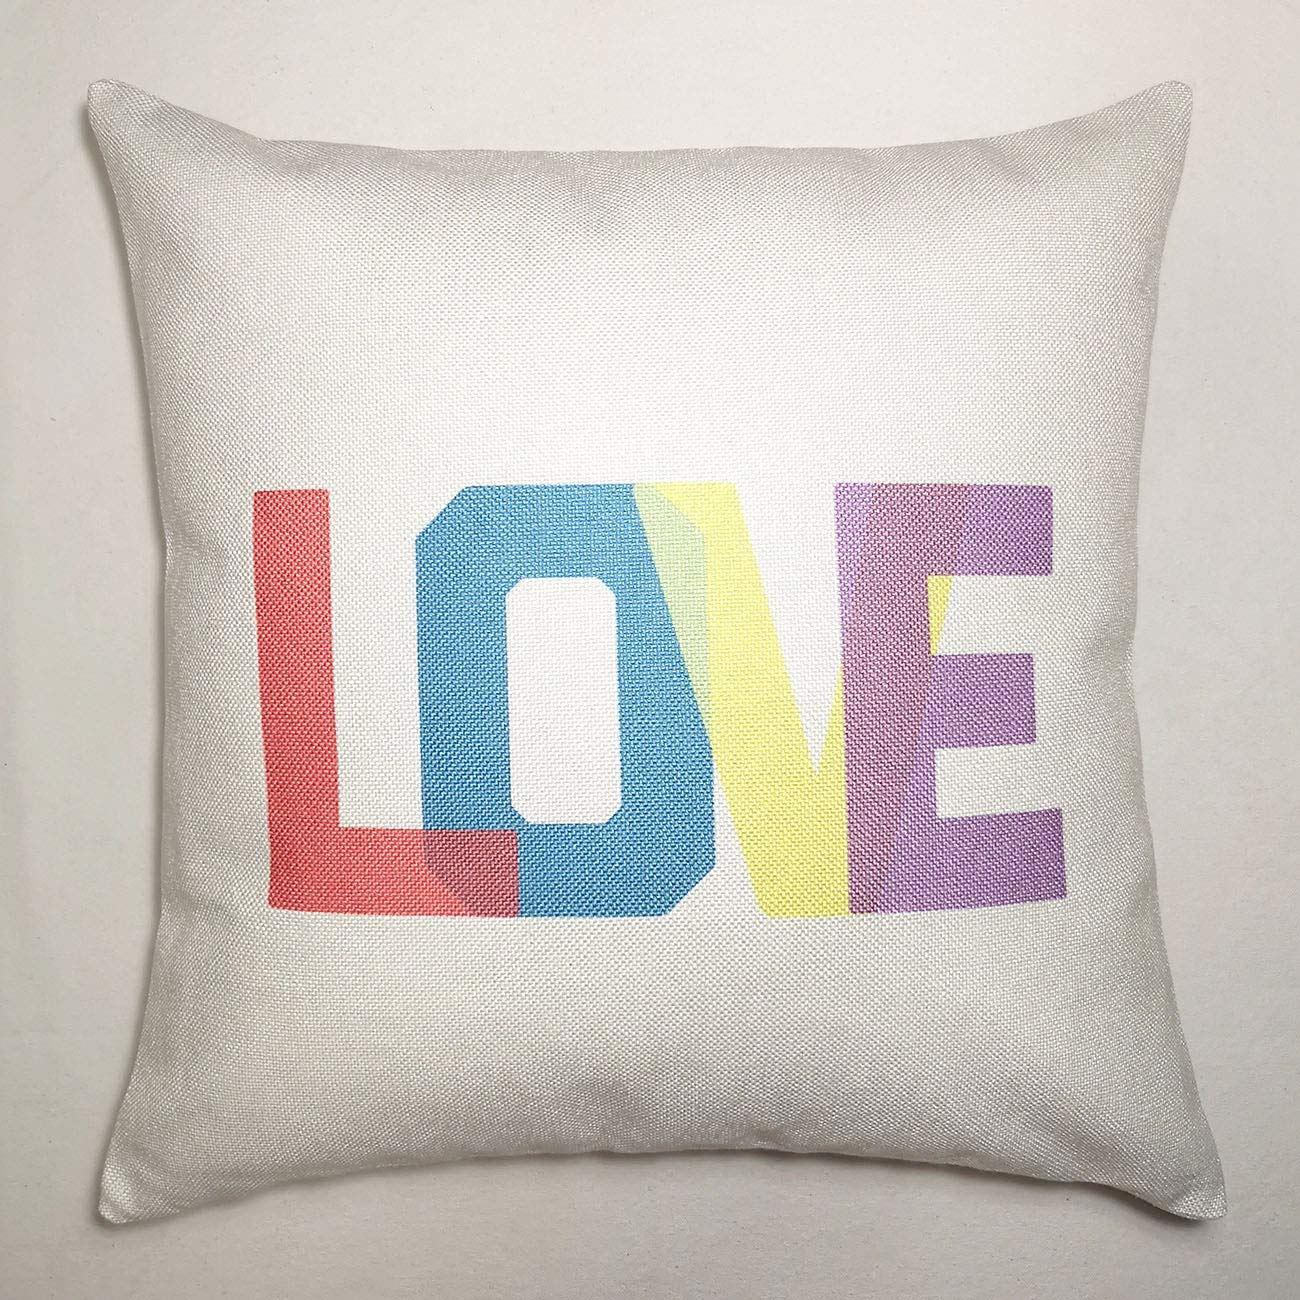 Turnip Design Abstract Art Love Letters Home Decor Wedding Housewarming Gift Cotton Cushion Cover Throw Pillow Case TDPN19